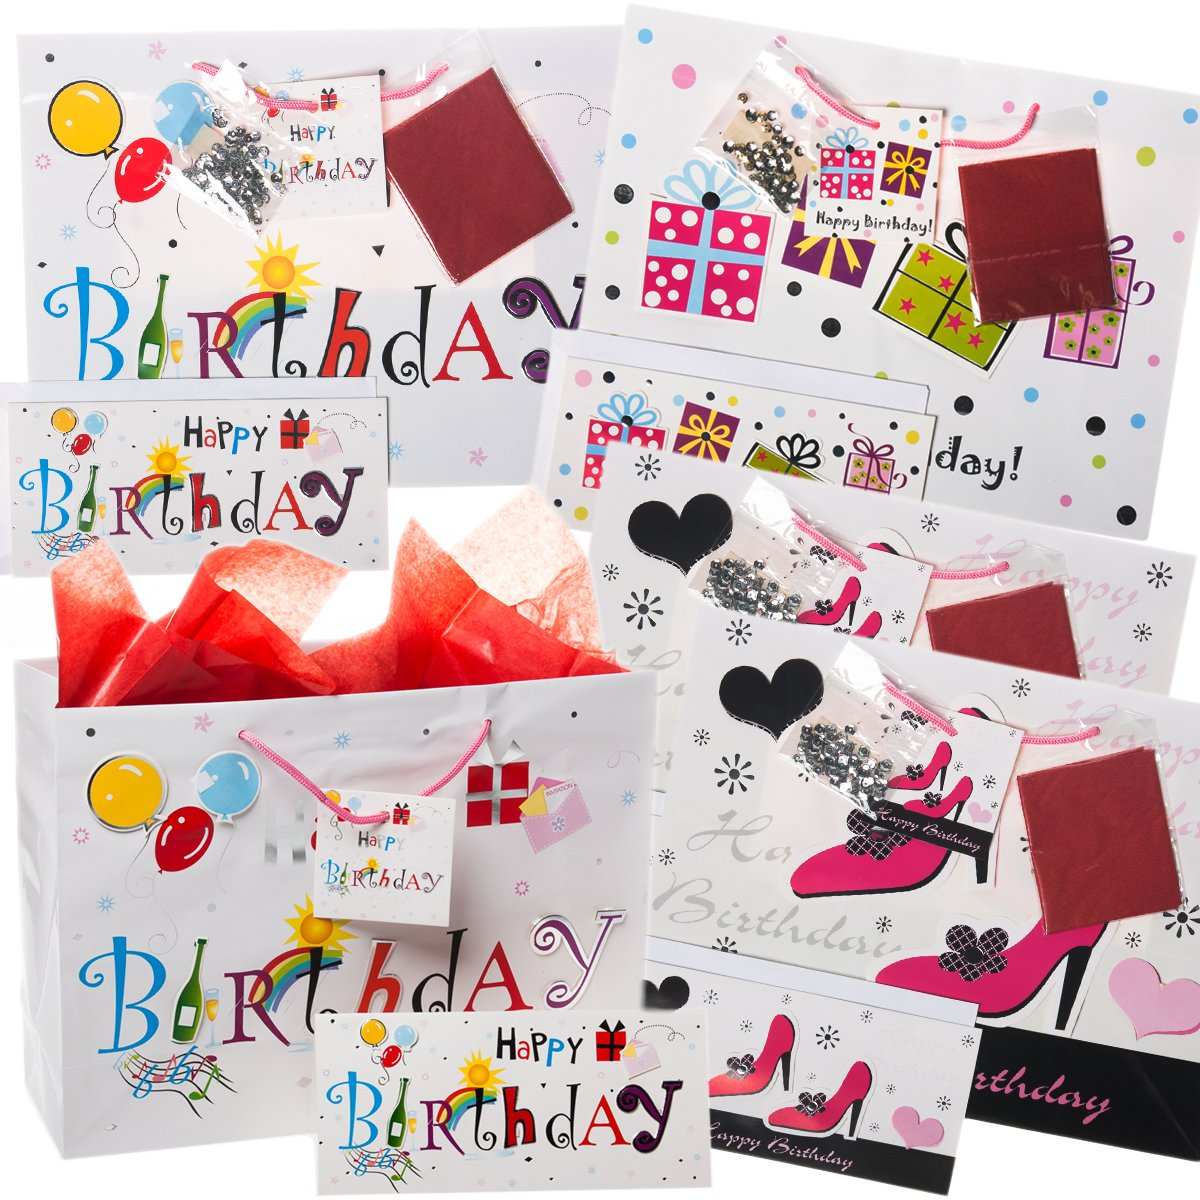 Amazon 20pc Happy Birthday Gift Bag Set Cards Envelopes Tissue Paper Handles Party Bulk Lot For Women Medium Size Health Personal Care